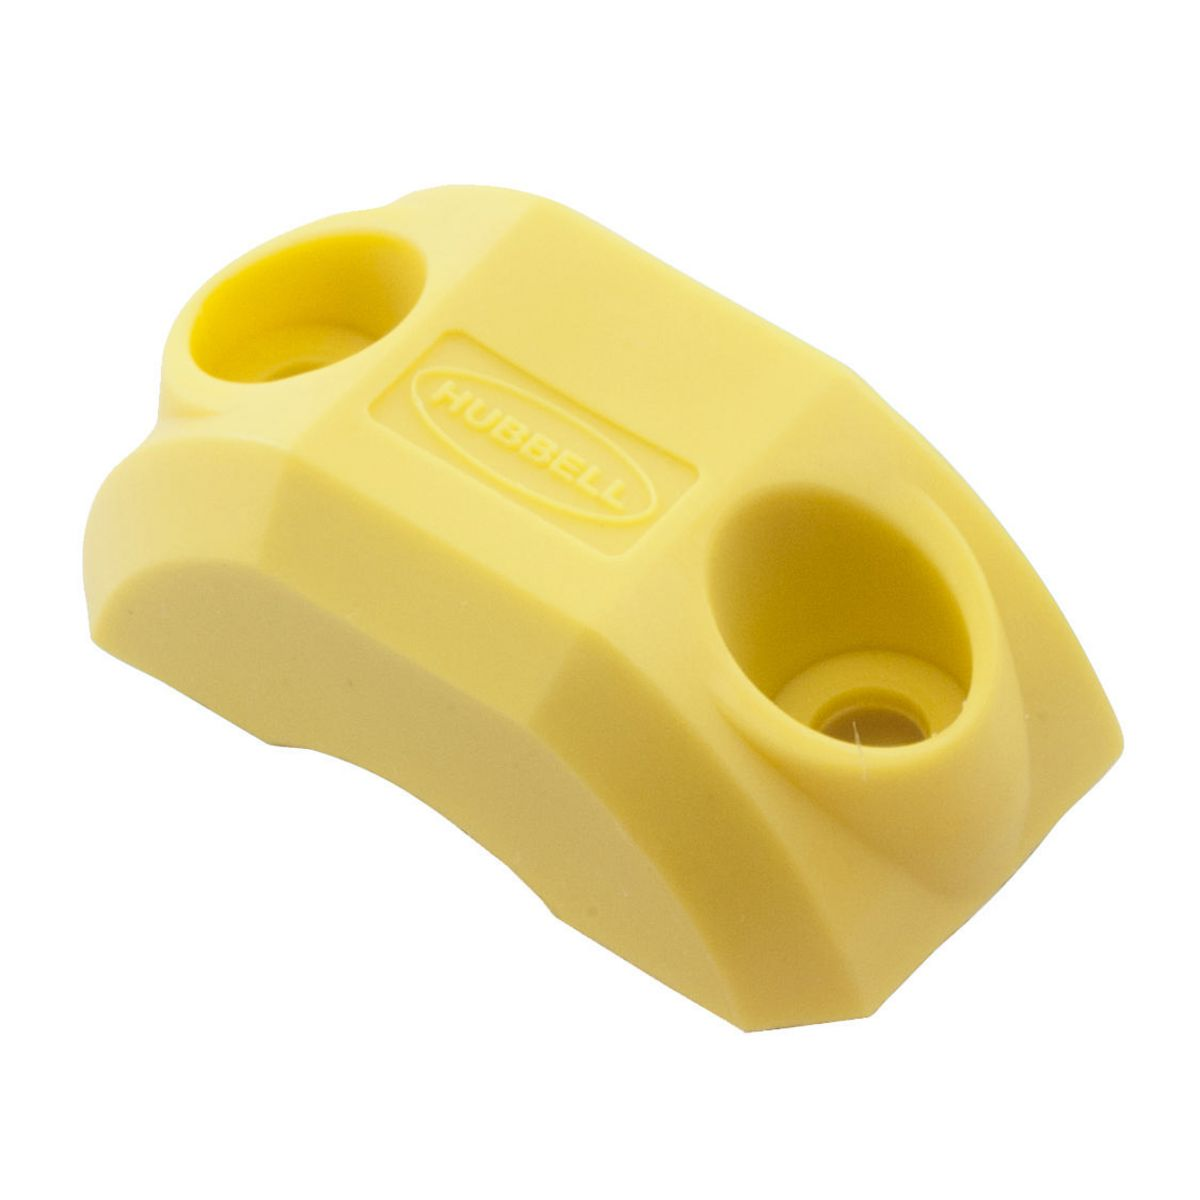 Hubbell HBLCORDCLAMPY INSULGRIP SIZE 1 CORD CLAMP YELLOW